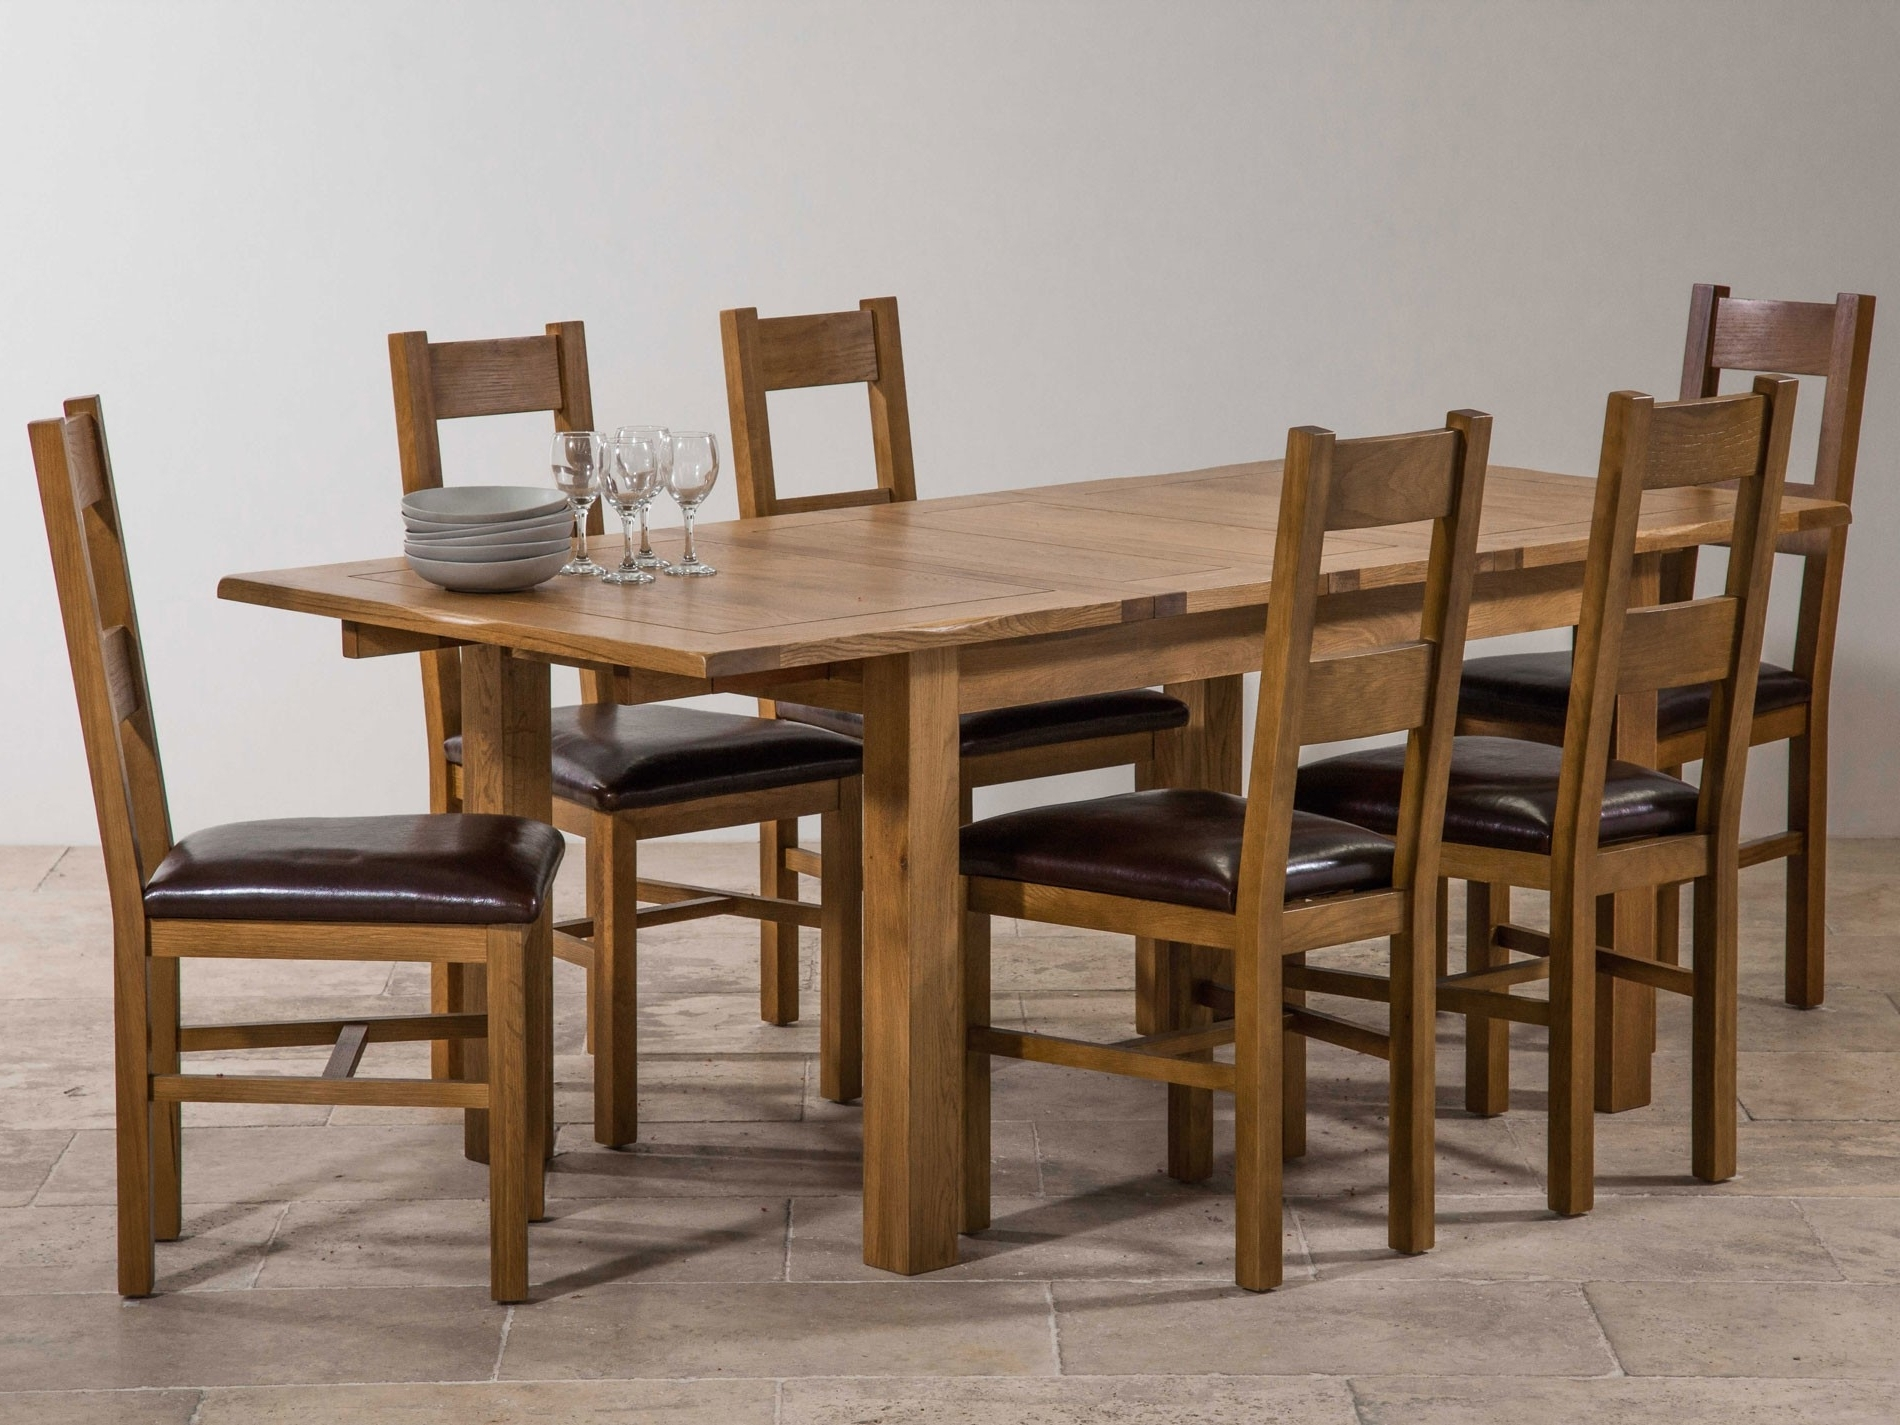 Trendy Square Extending Dining Table And Chairs Inspirational Masso In Oak Extendable Dining Tables And Chairs (View 20 of 25)